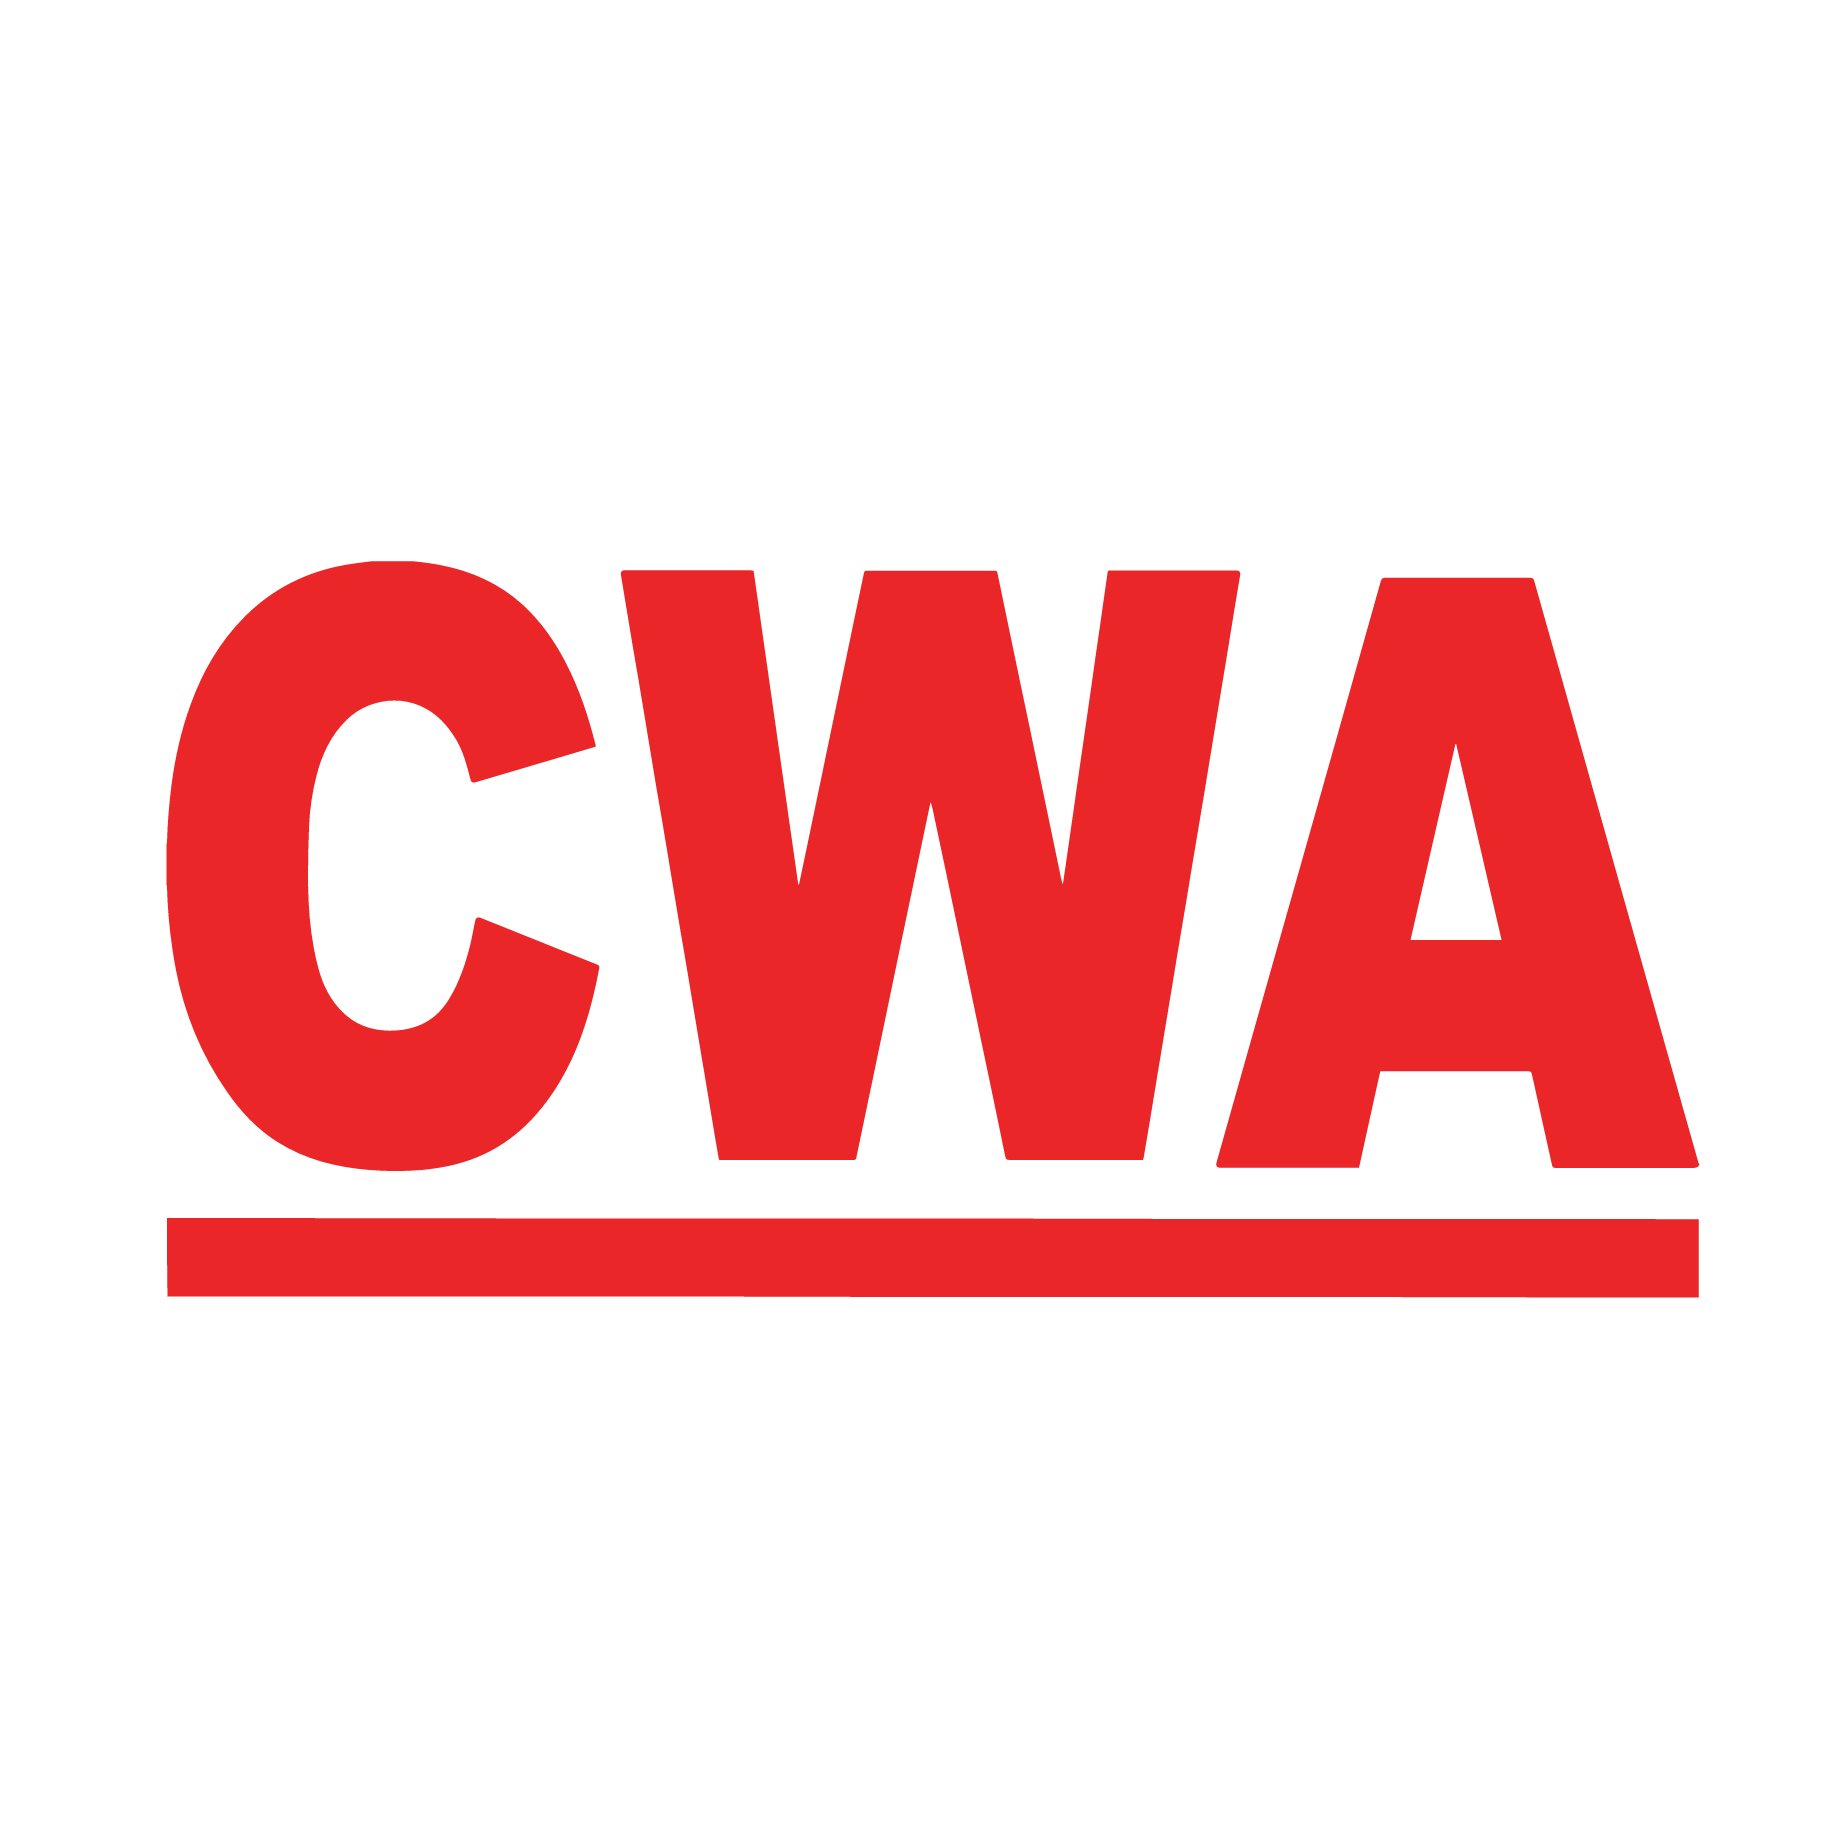 Communications Workers of America